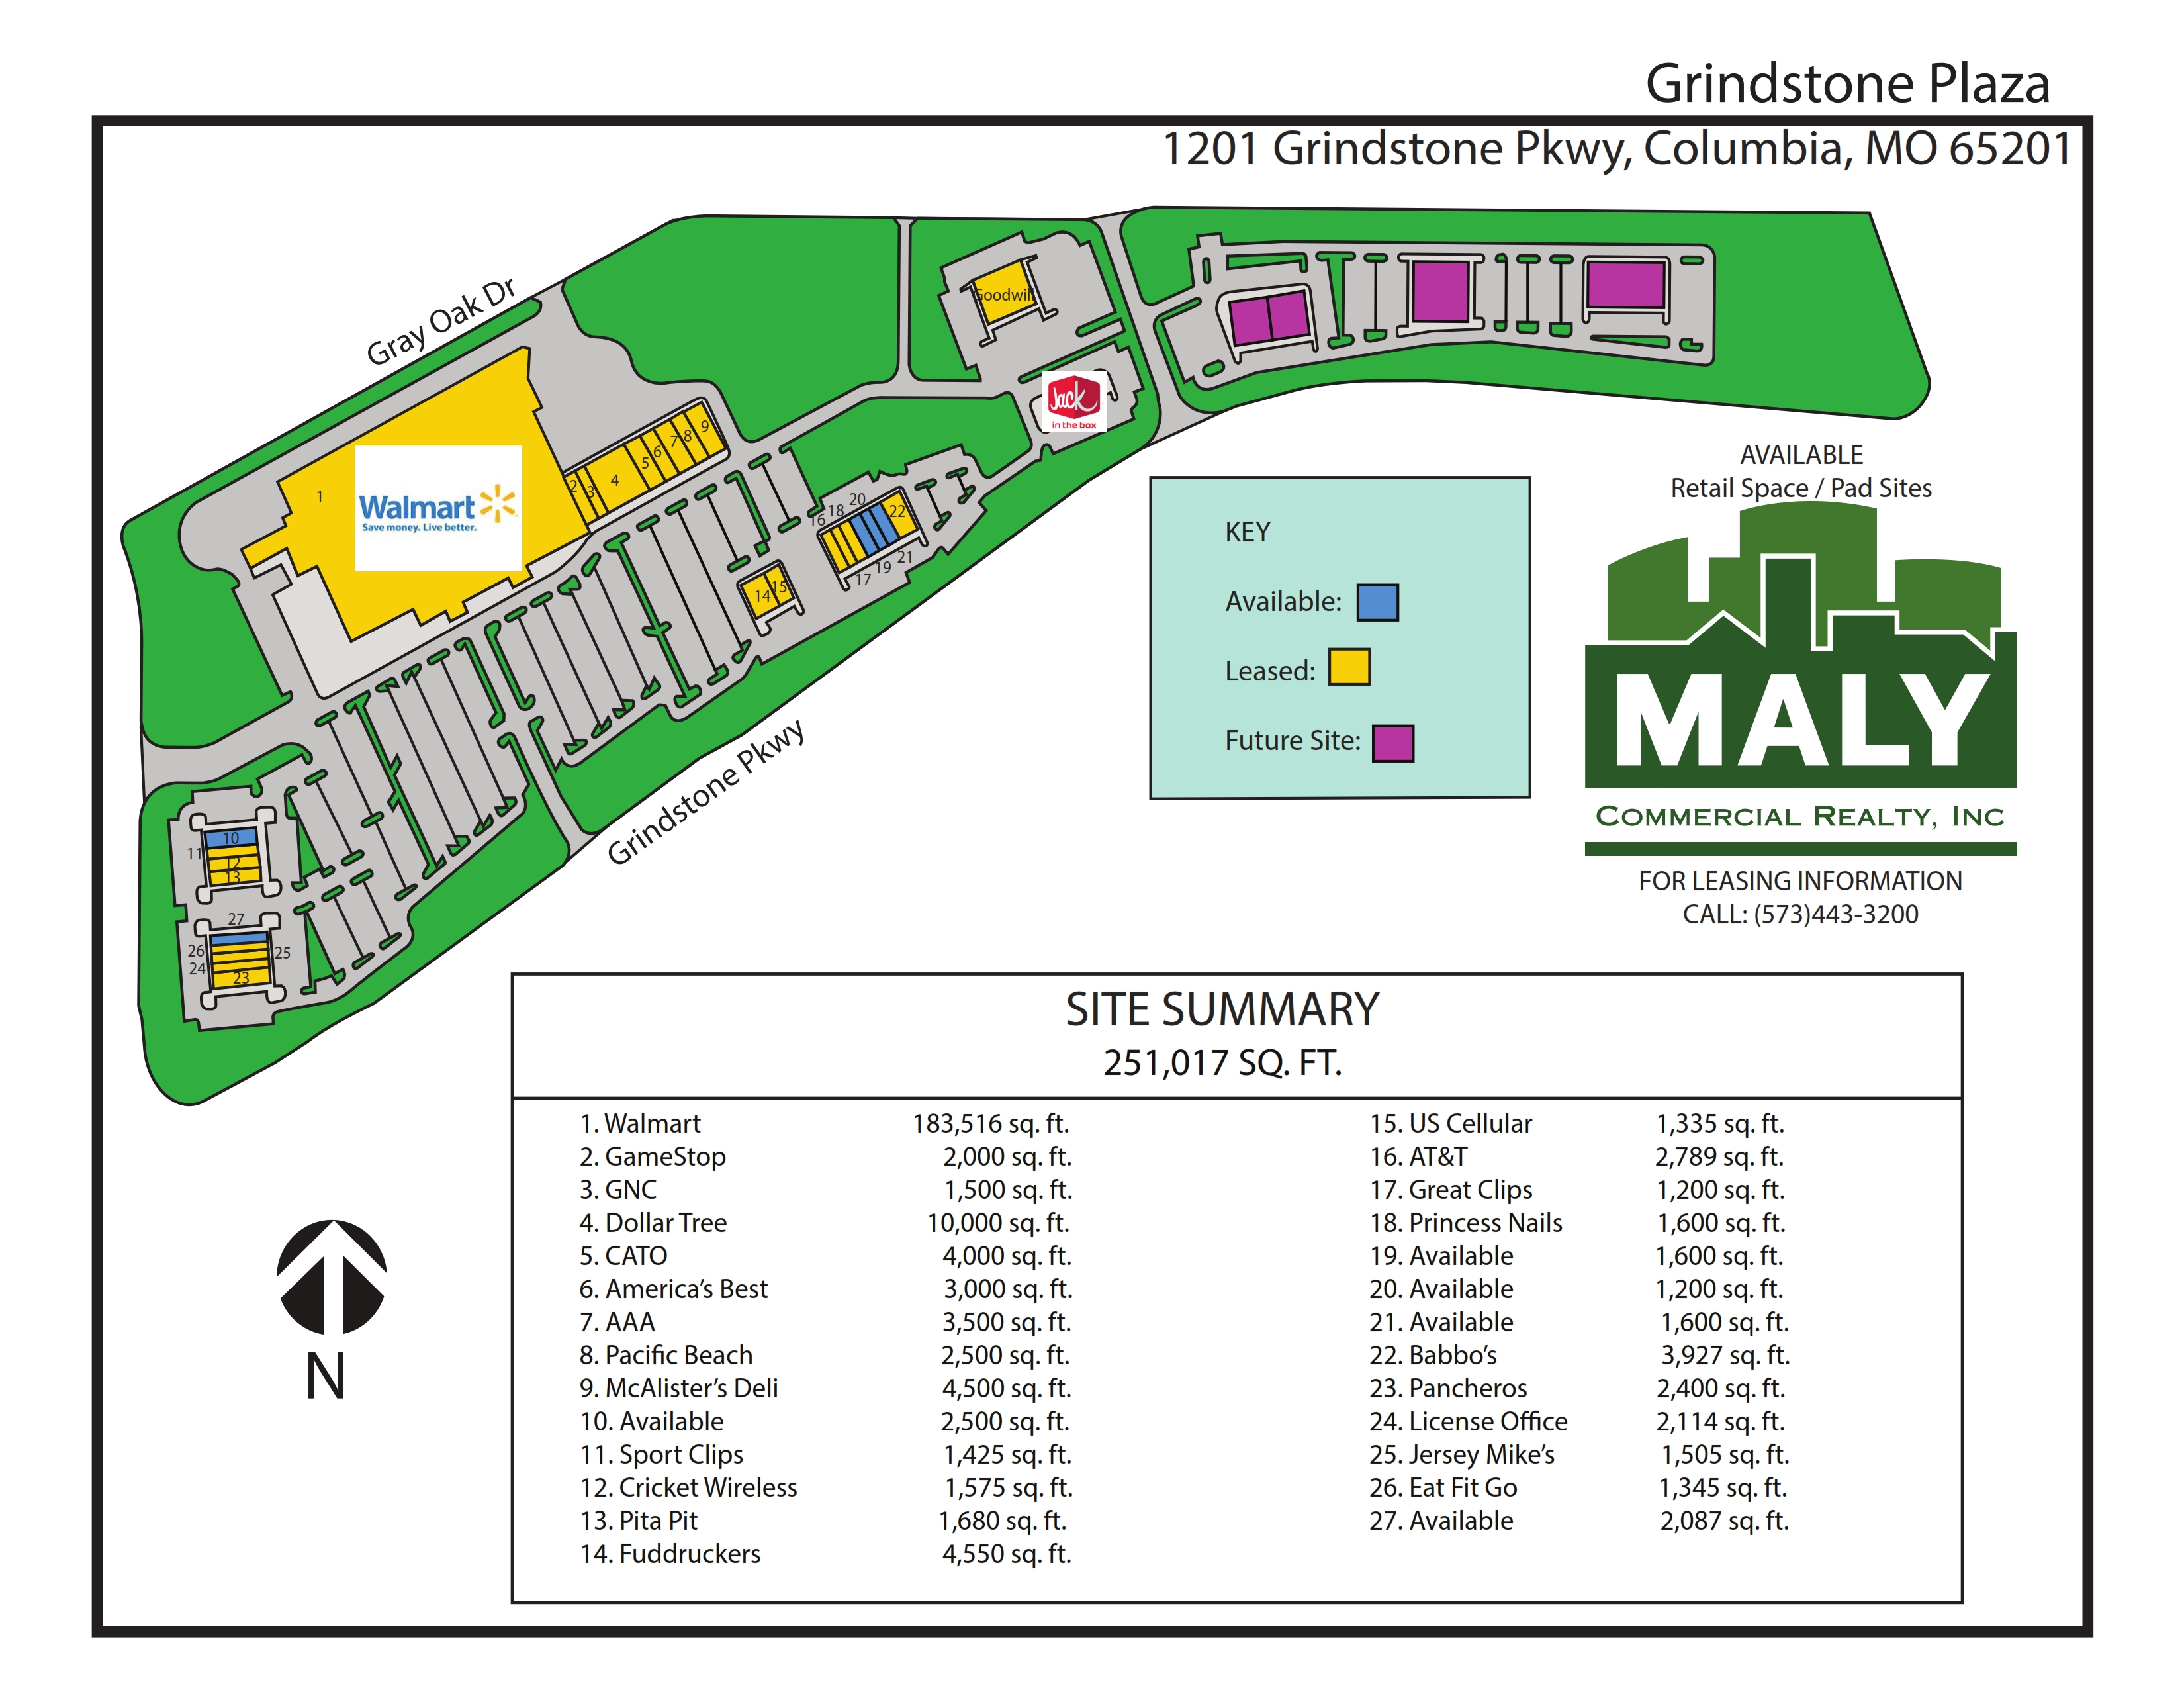 Grindstone Plaza – 6 acres